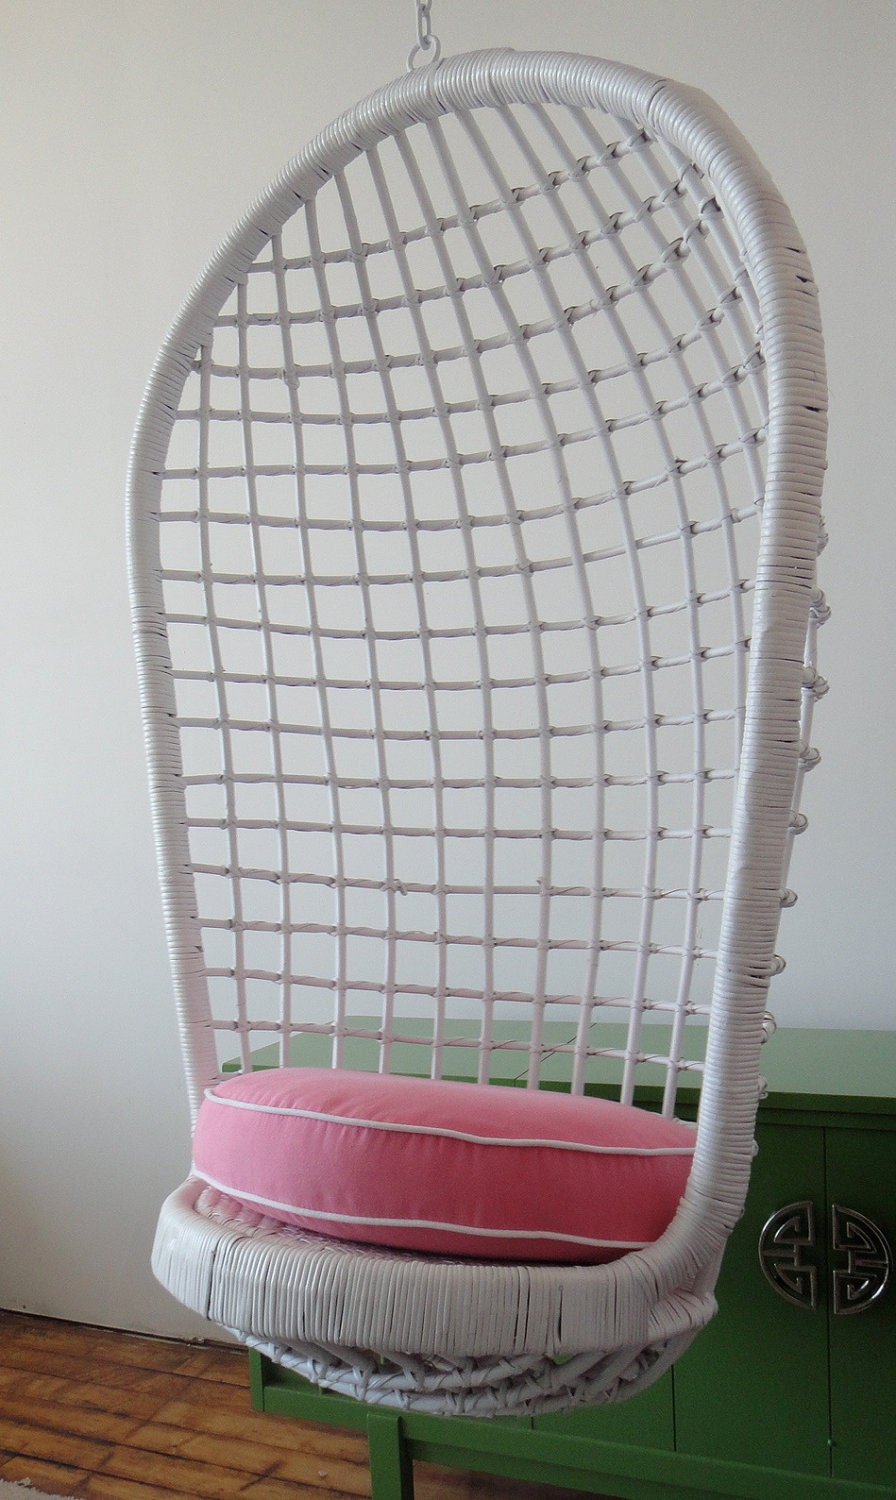 Hanging Basket Chair Egg Chair Rattan Wicker Pink and White